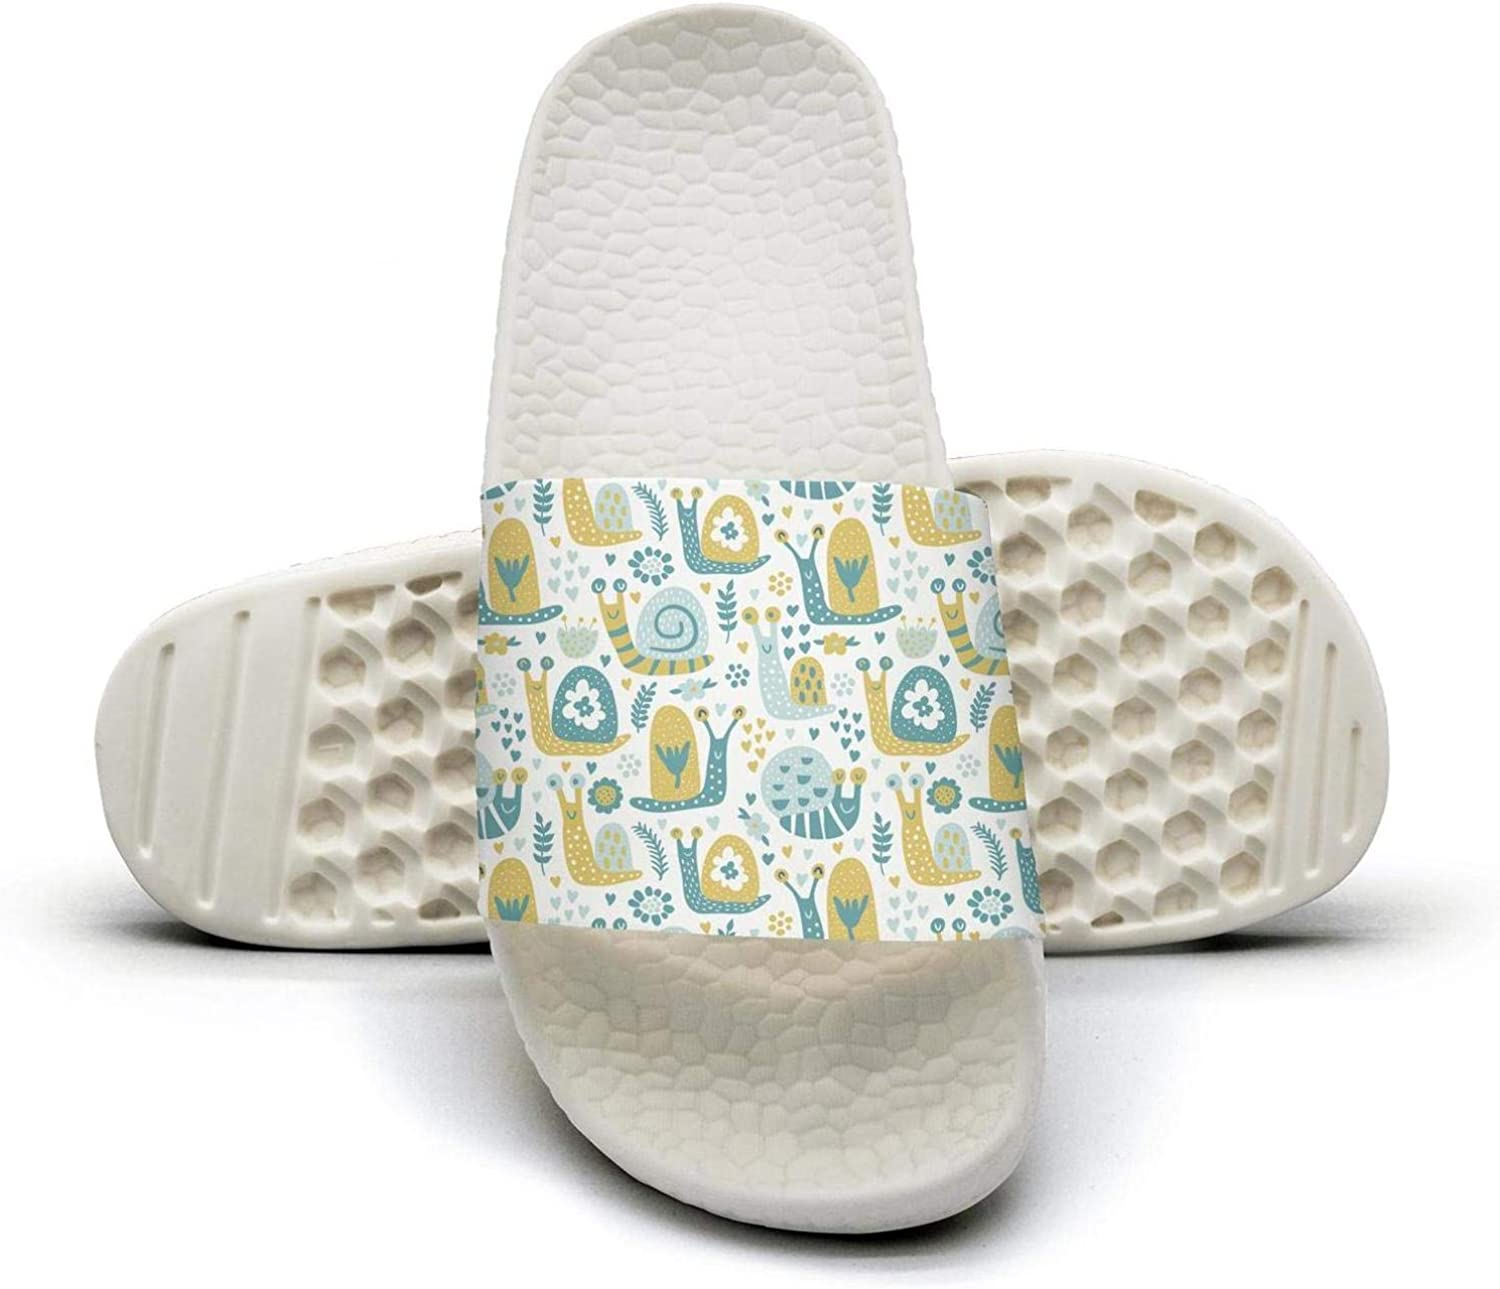 Womens Slide Sandals Forest Style Cute Yellow And bluee Snail Indoor Bath Slipper Sunmmer Slip On Sandals Pool shoes